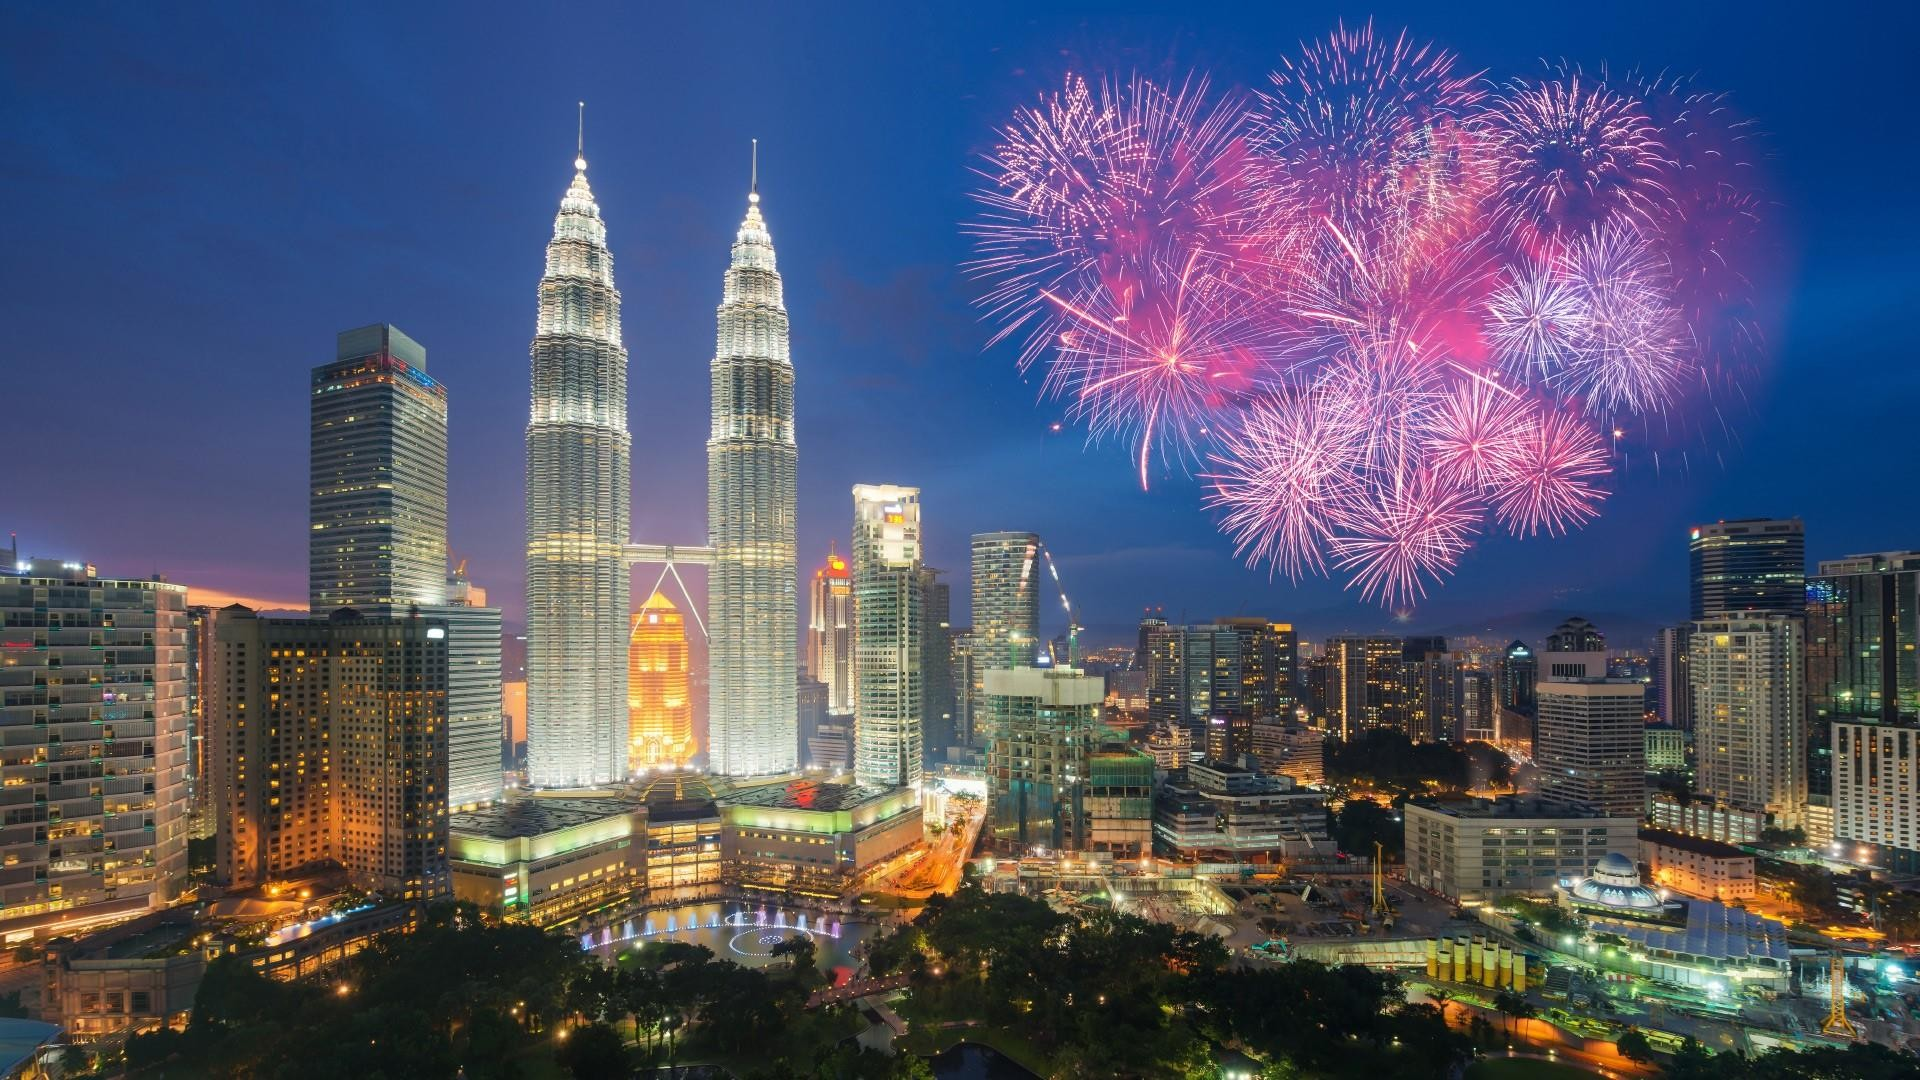 Res: 1920x1080, Petronas Twin Towers - Kuala Lumpur, Malaysia Wallpaper | Wallpaper Studio  10 | Tens of thousands HD and UltraHD wallpapers for Android, Windows and  Xbox